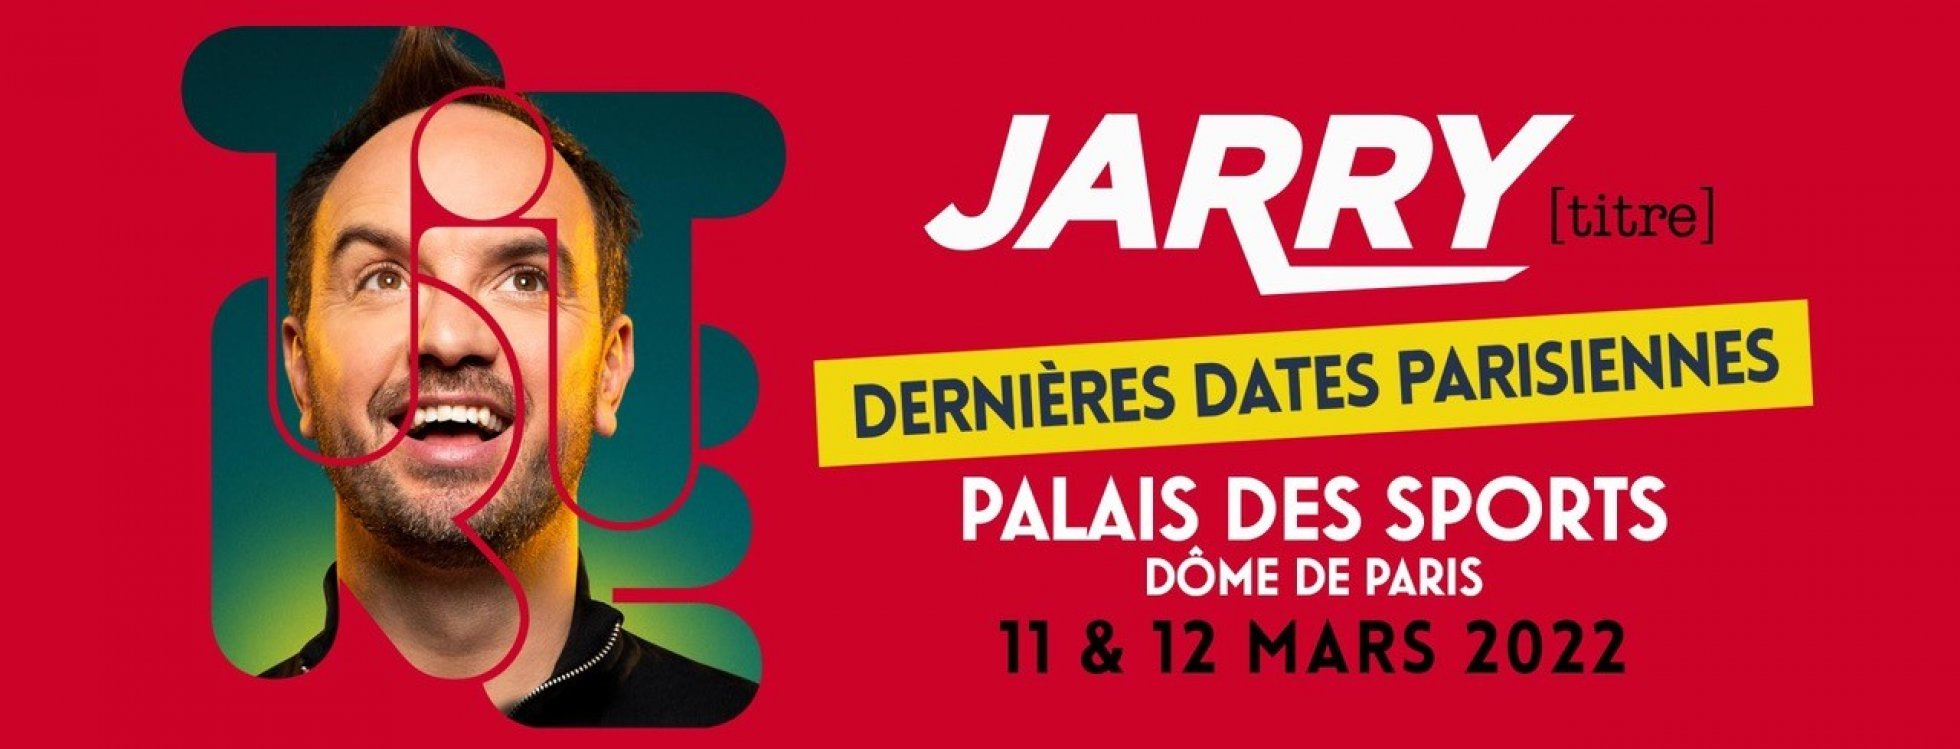 dome de paris : JARRY